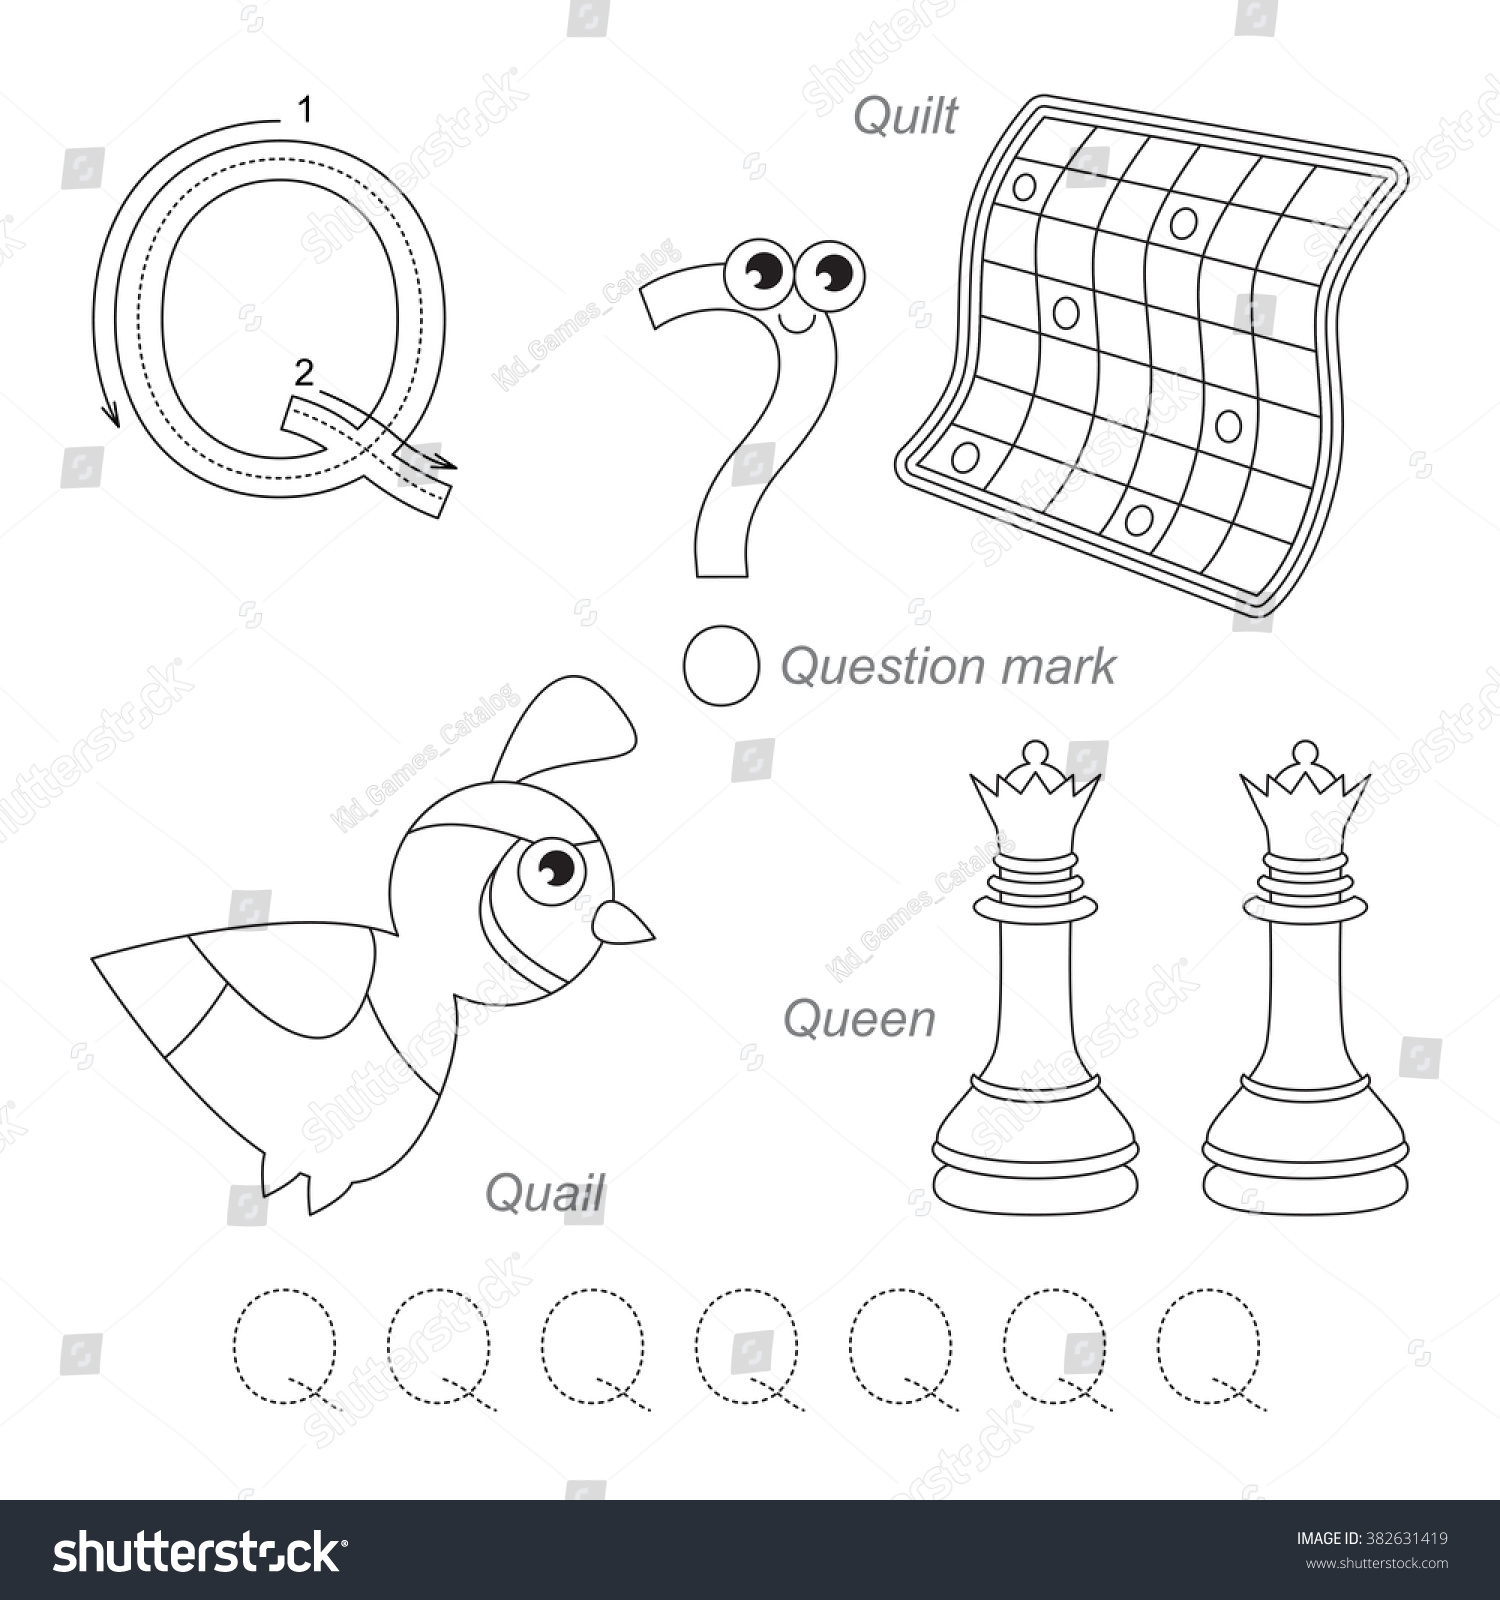 Tracing Worksheet Children Full English Alphabet Stock Vector 382631419 -  Shutterstock